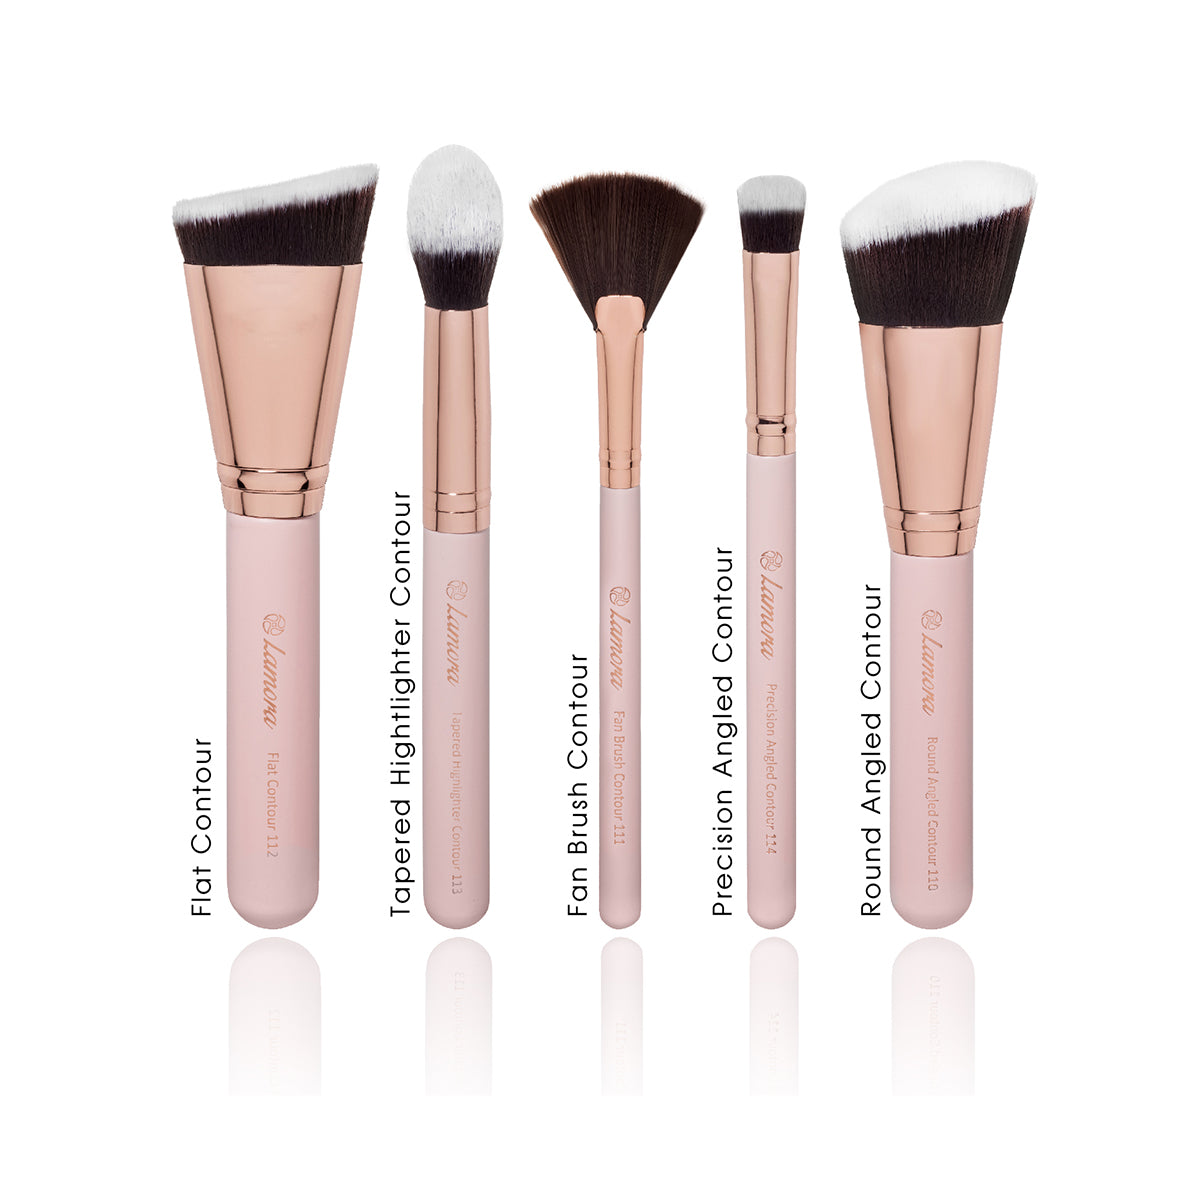 Labeled contour brush set from amazon